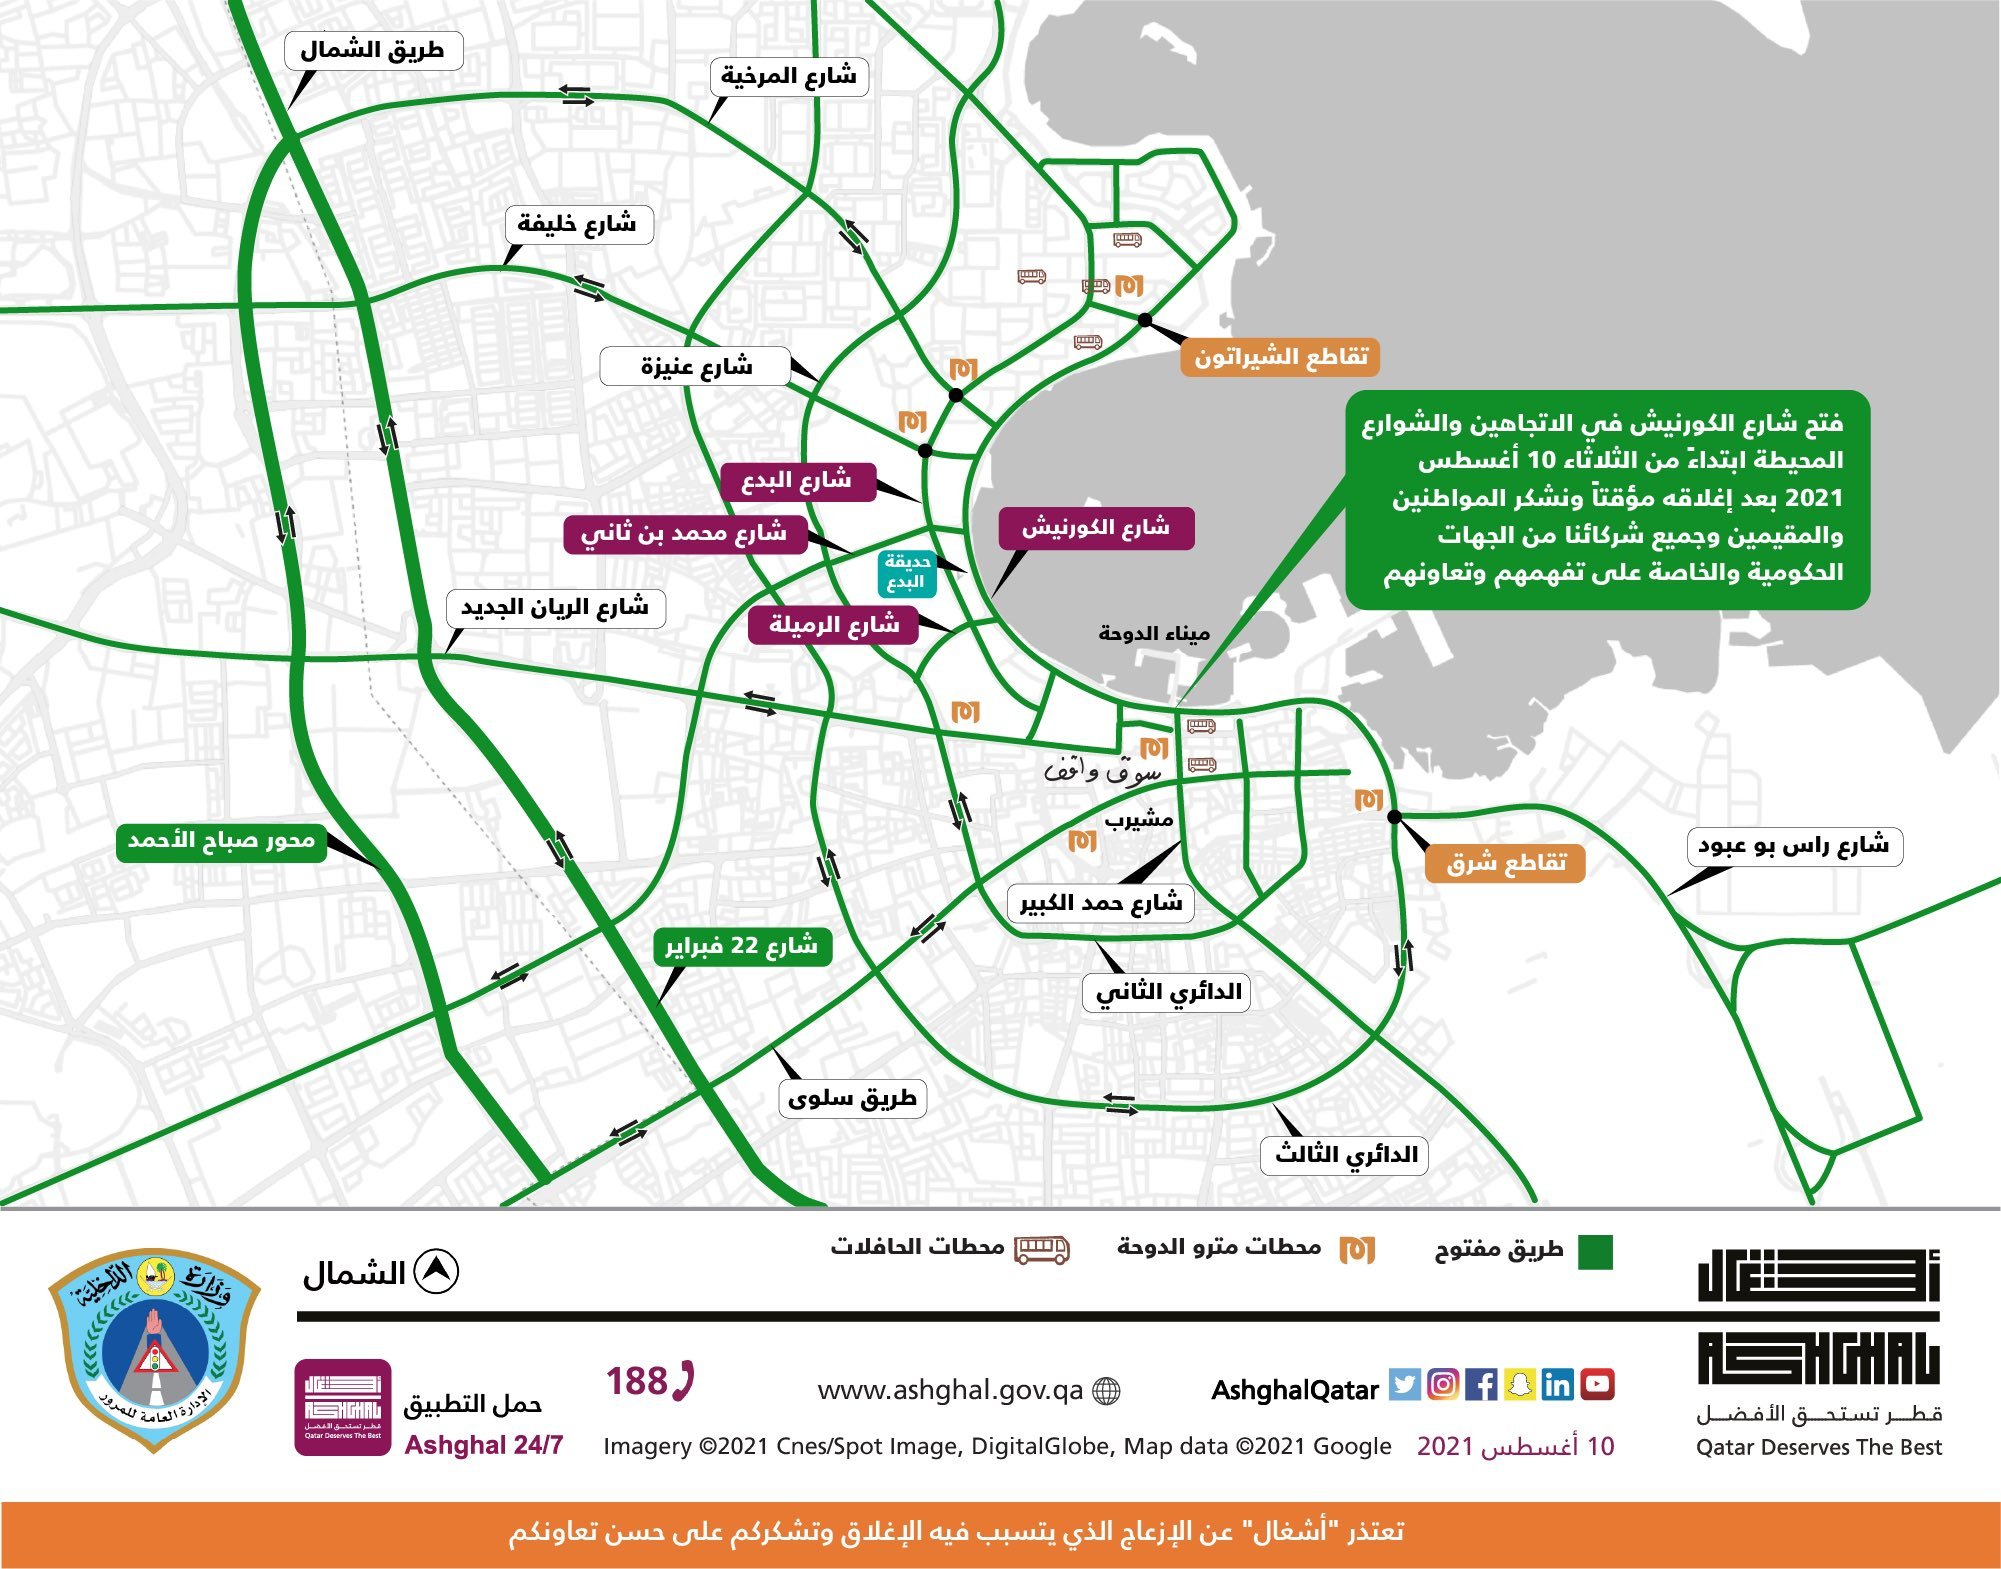 Traffic on Corniche St. is open starting today